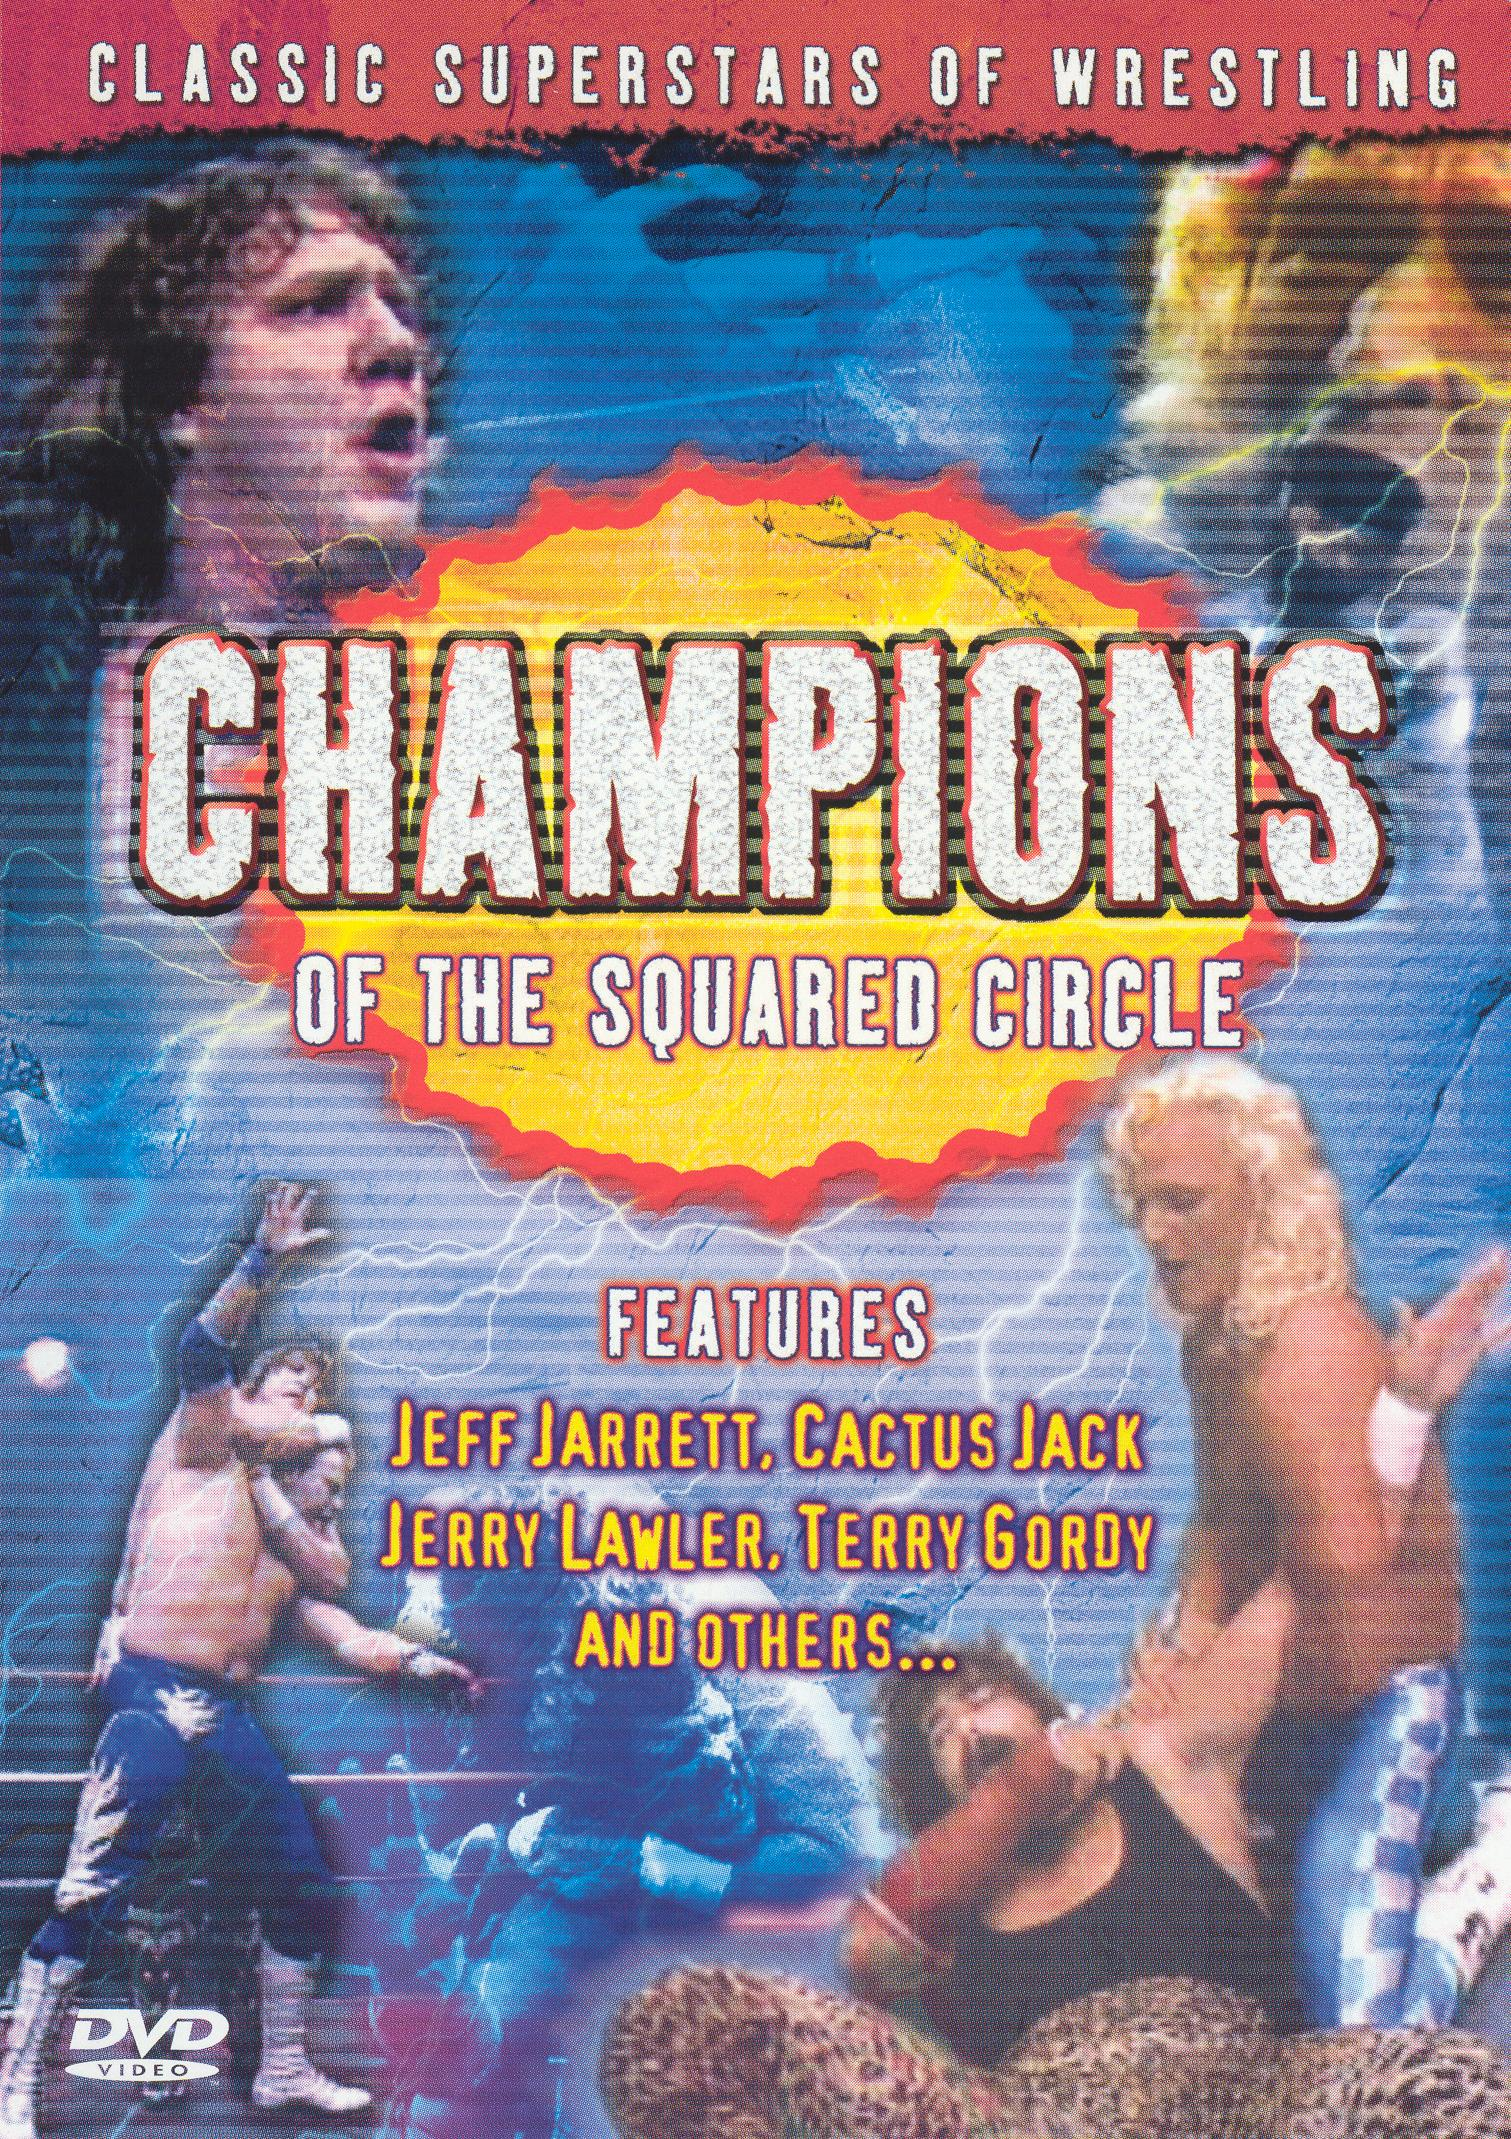 Classic Superstars of Wrestling: Champions of the Squared Circle